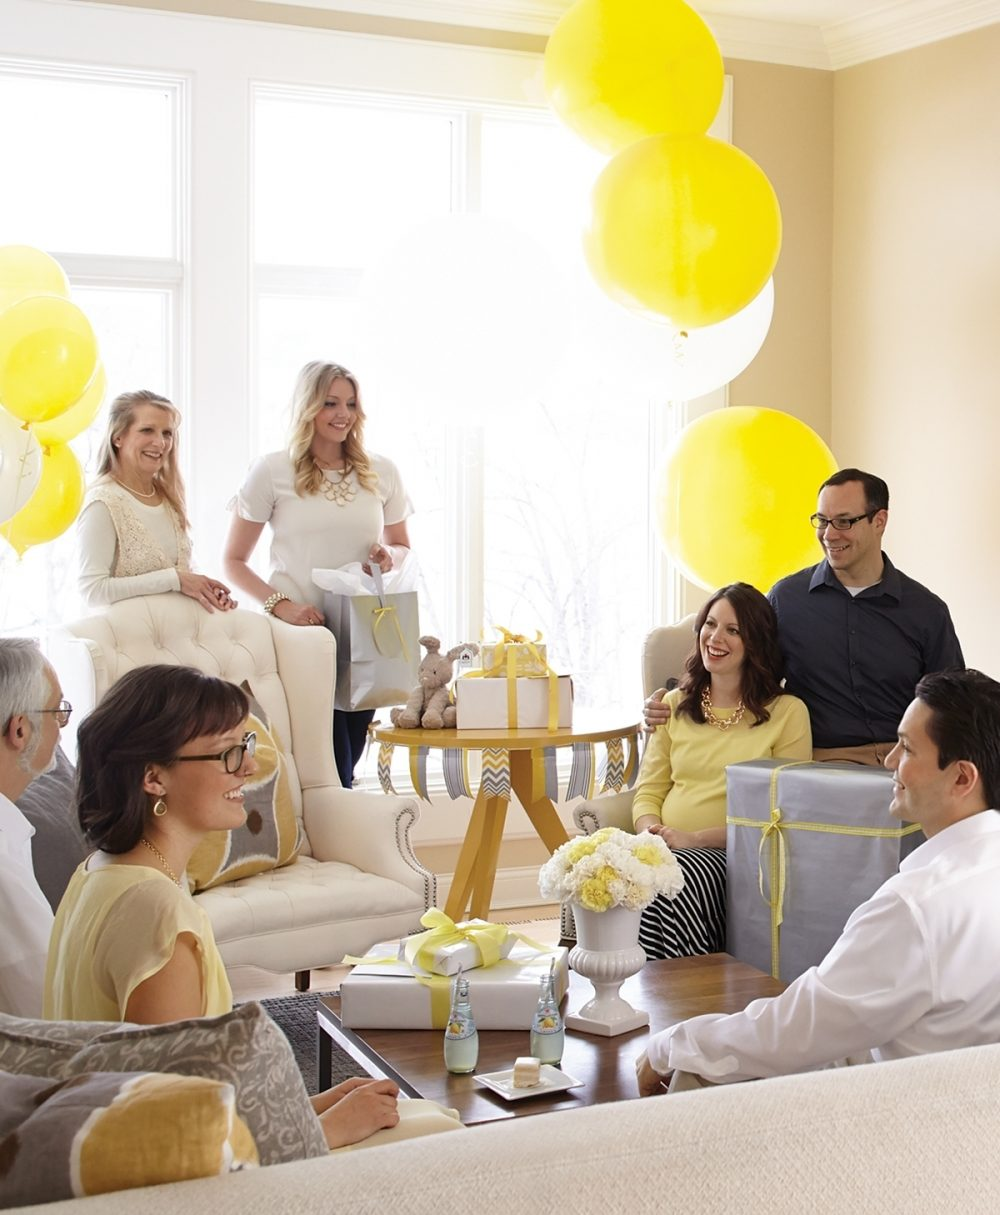 Guests gather at a co-ed baby shower